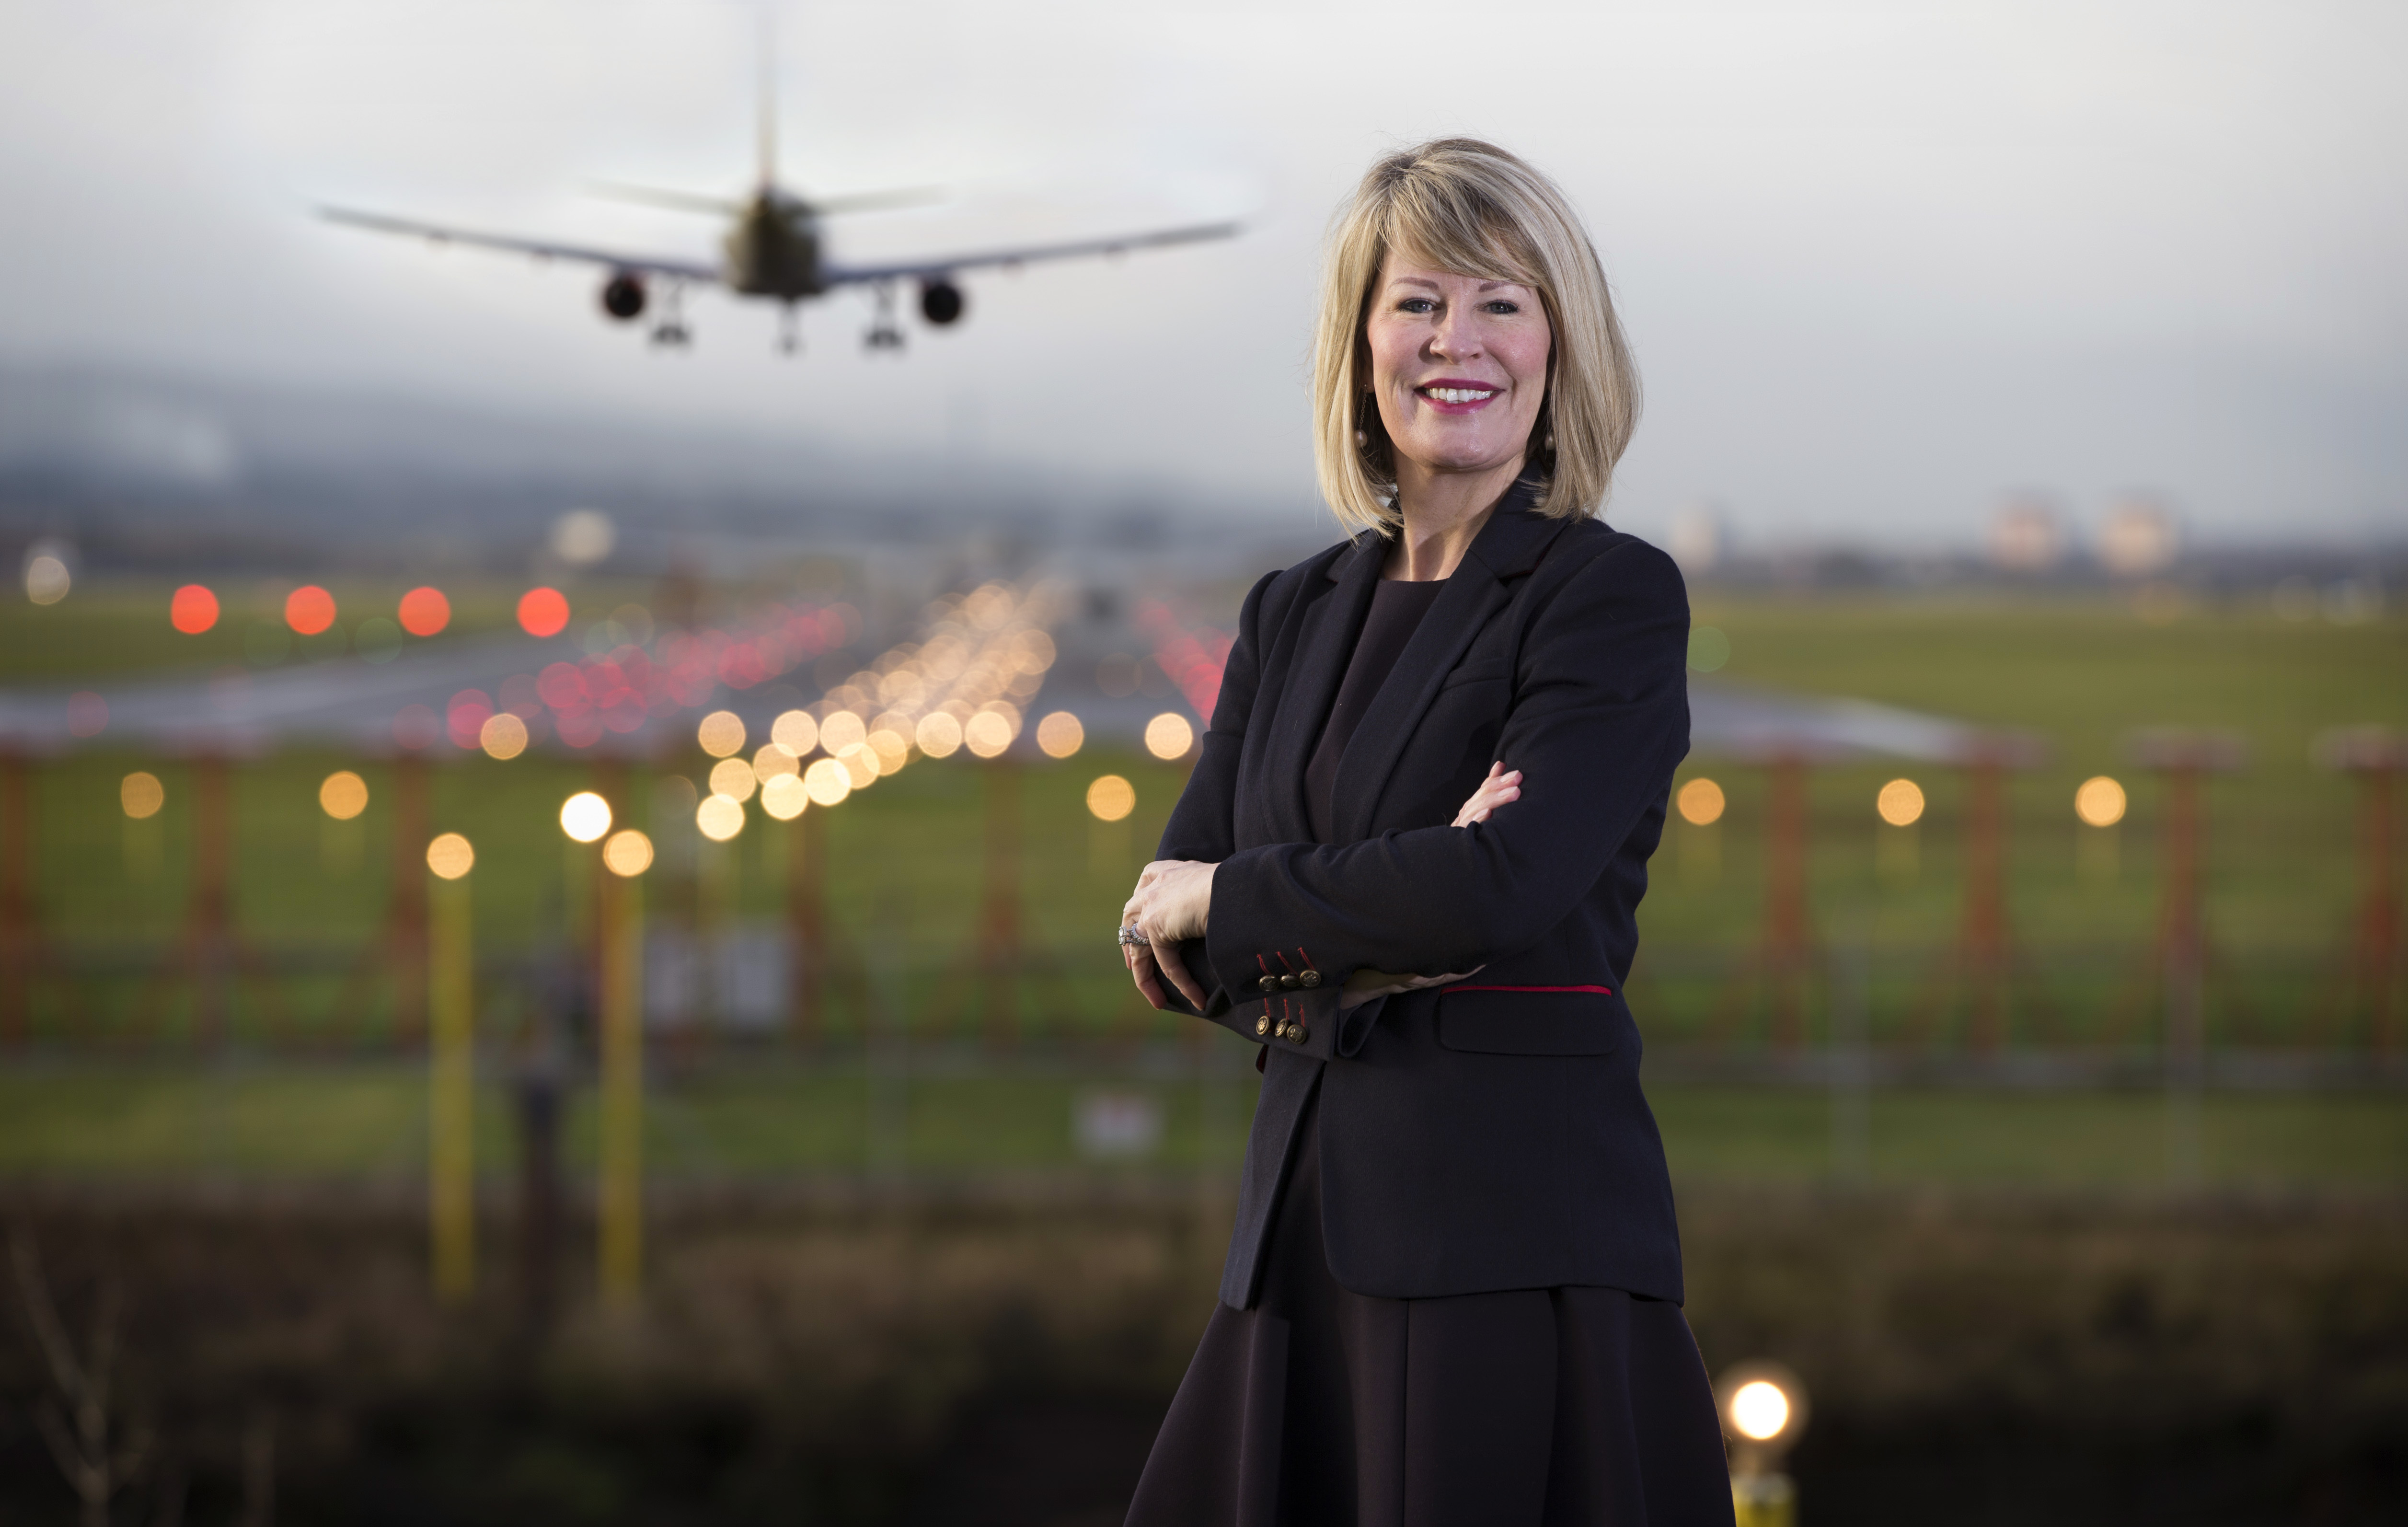 Edinburgh and Glasgow airports recorded busiest ever year in 2017